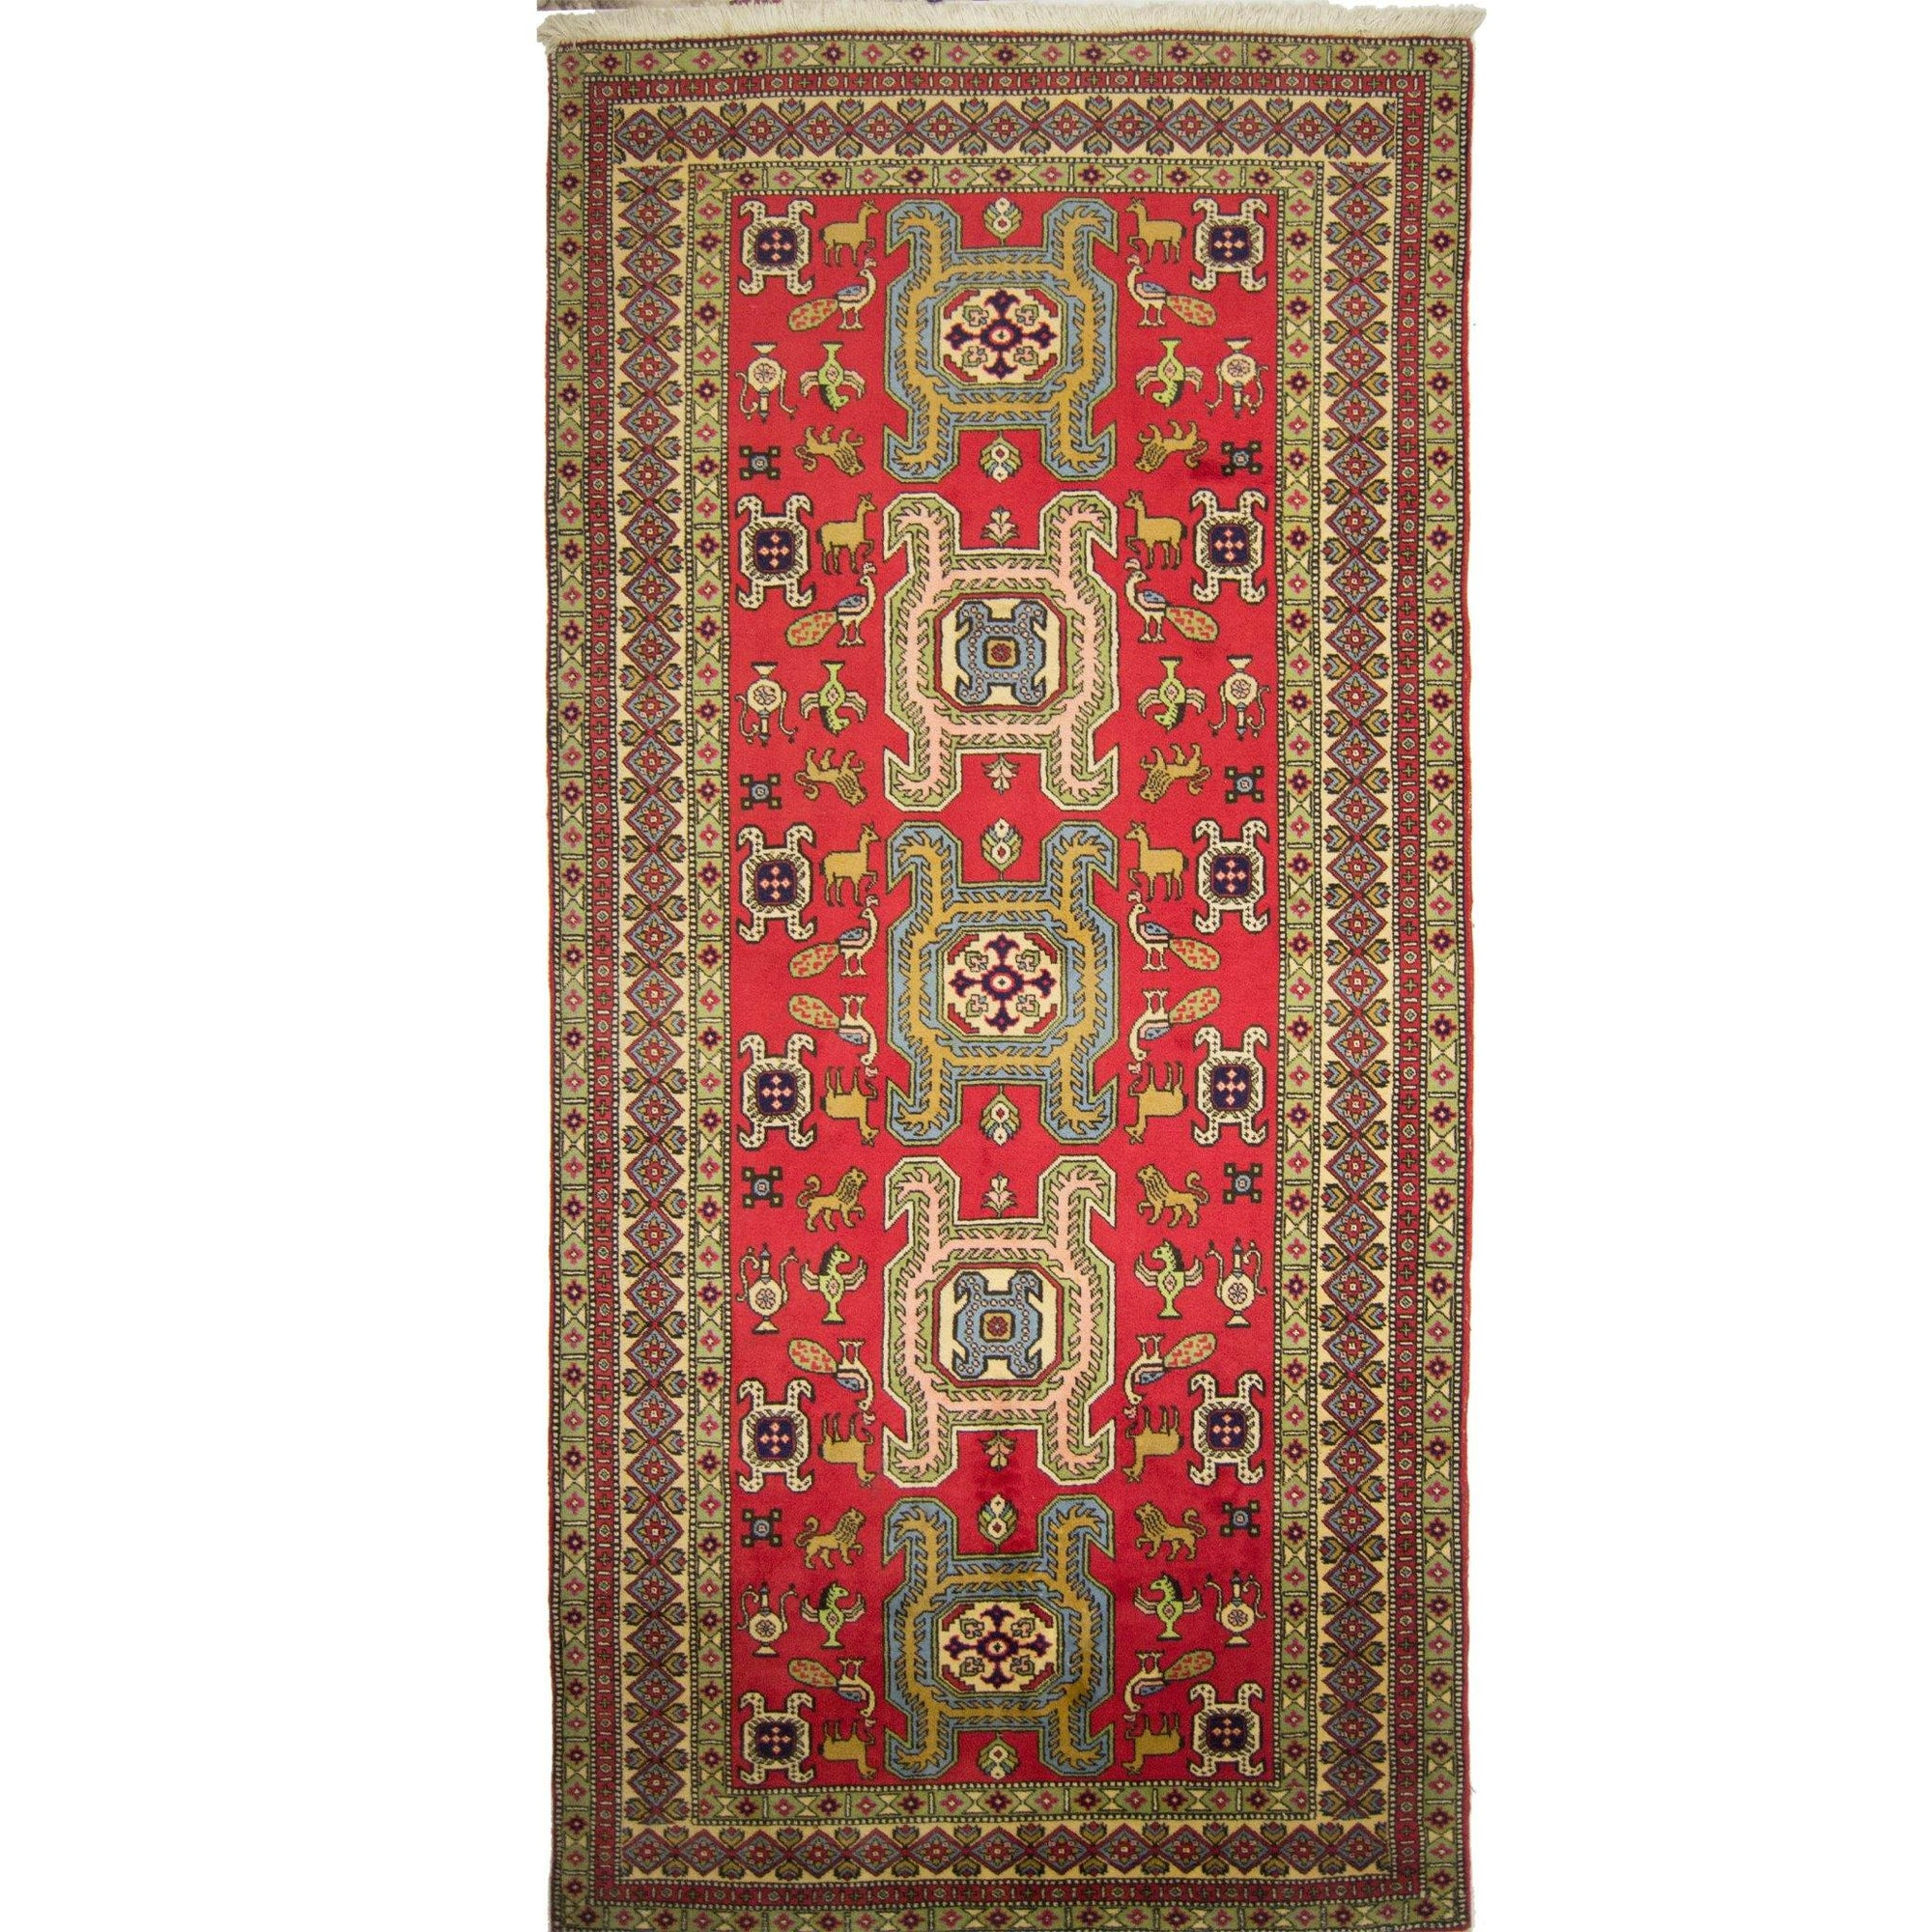 Persian Sarab Rug 156cm x 327cm Persian-Rug | House-of-Haghi | NewMarket | Auckland | NZ | Handmade Persian Rugs | Hand Knotted Persian Rugs